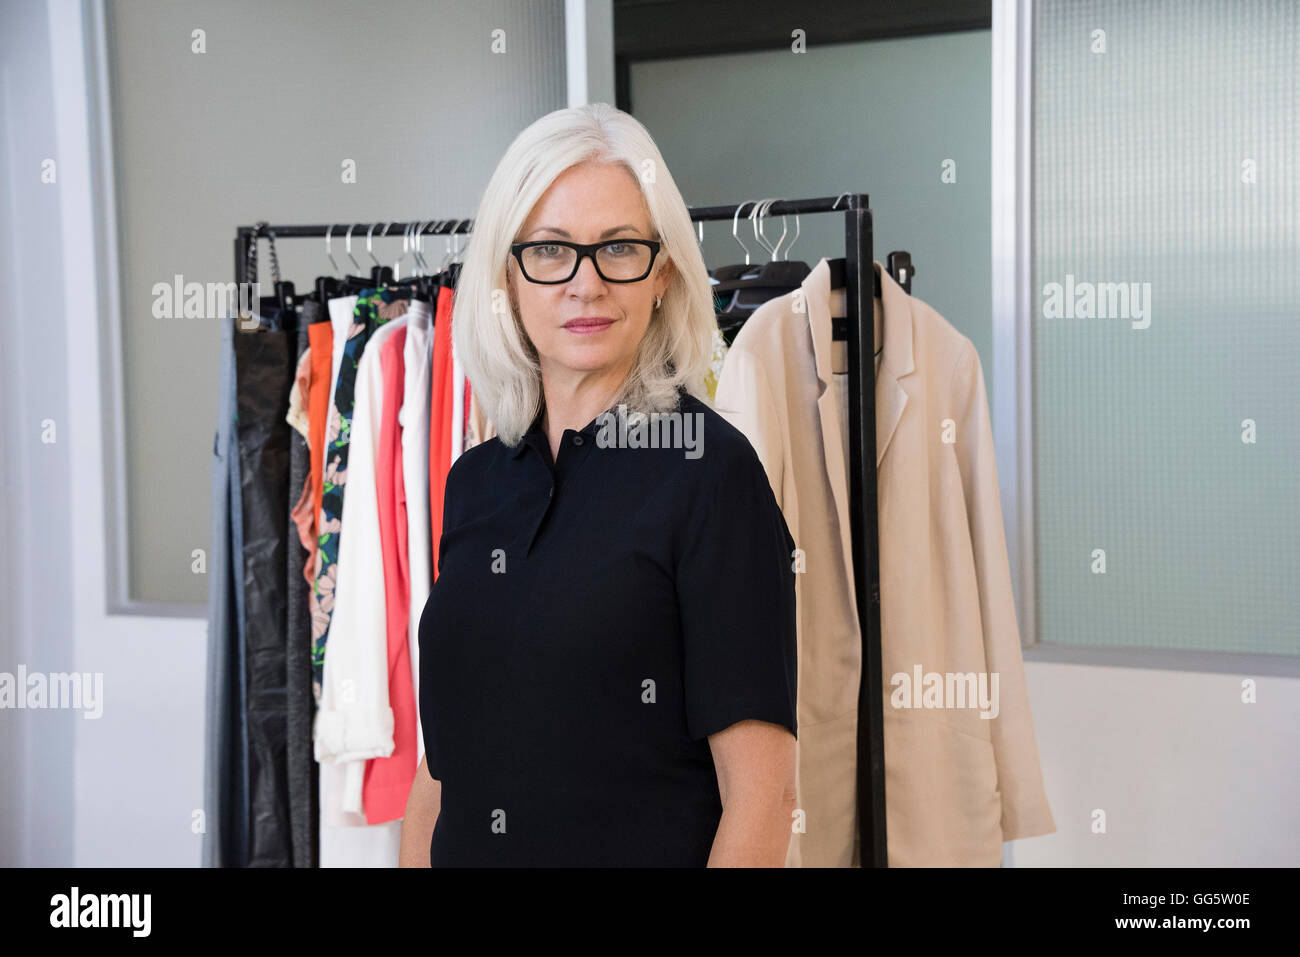 Dress designer standing in her office - Stock Image